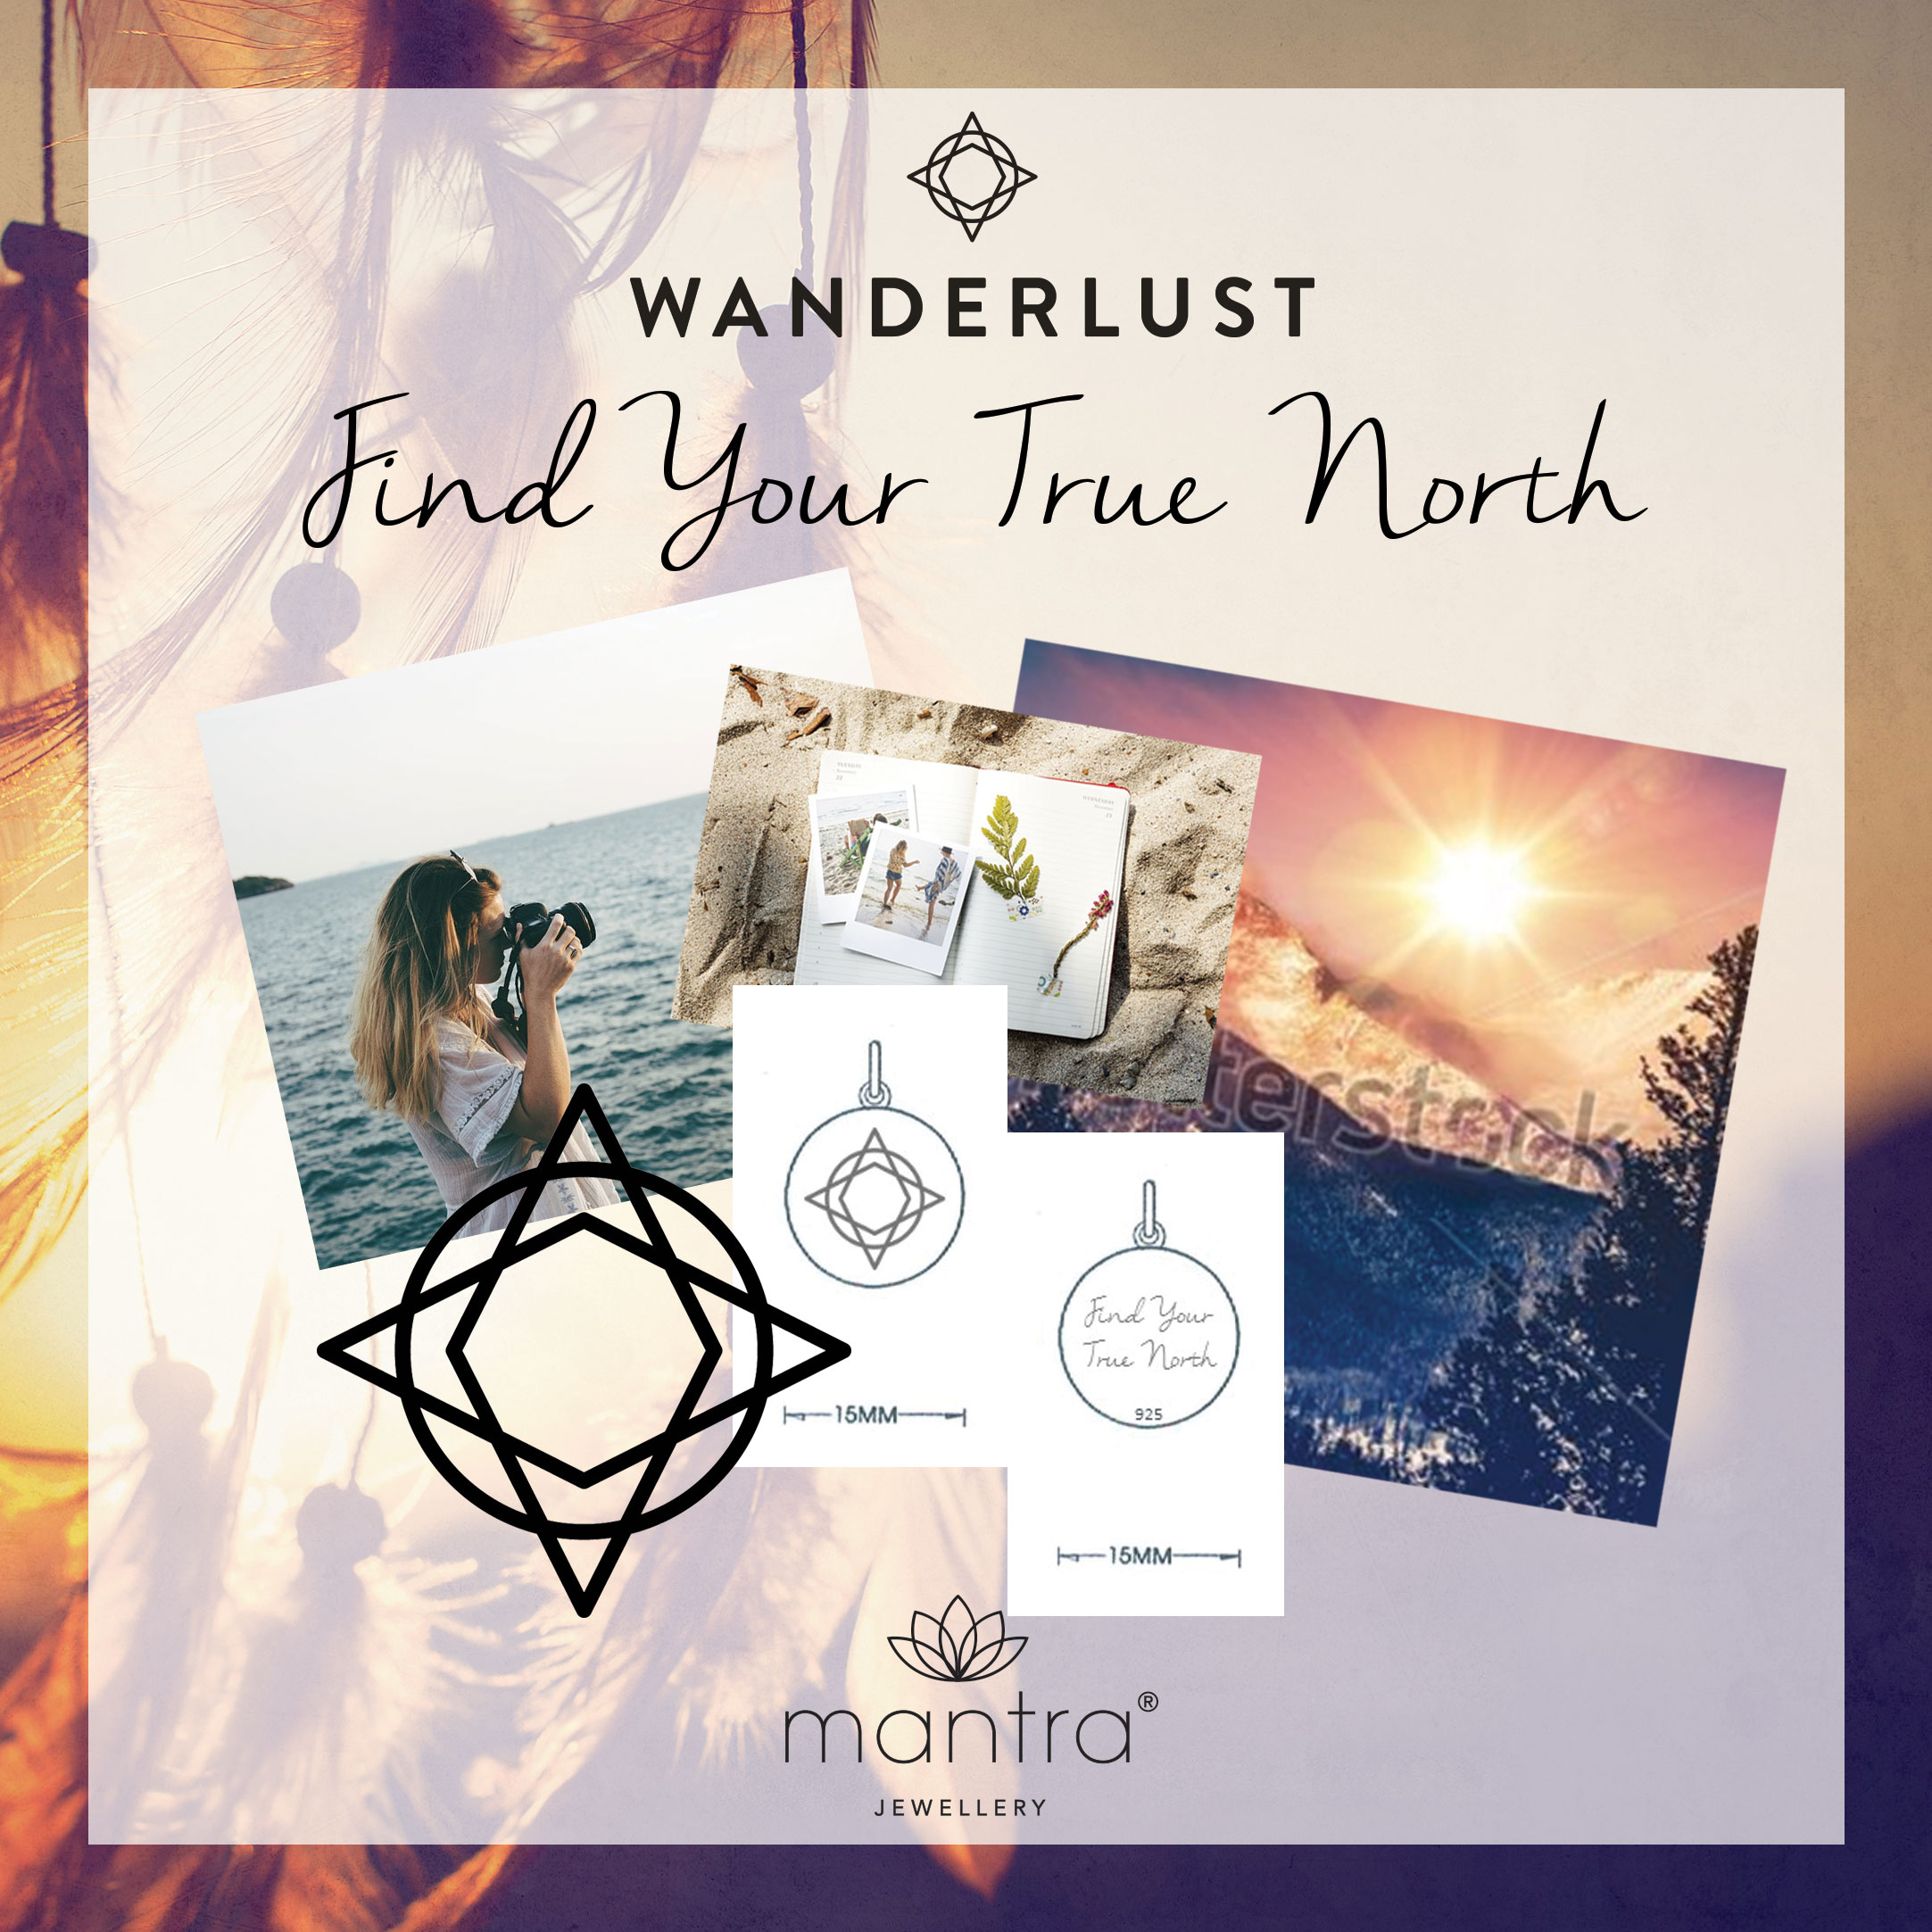 Collaboration with Wanderlust